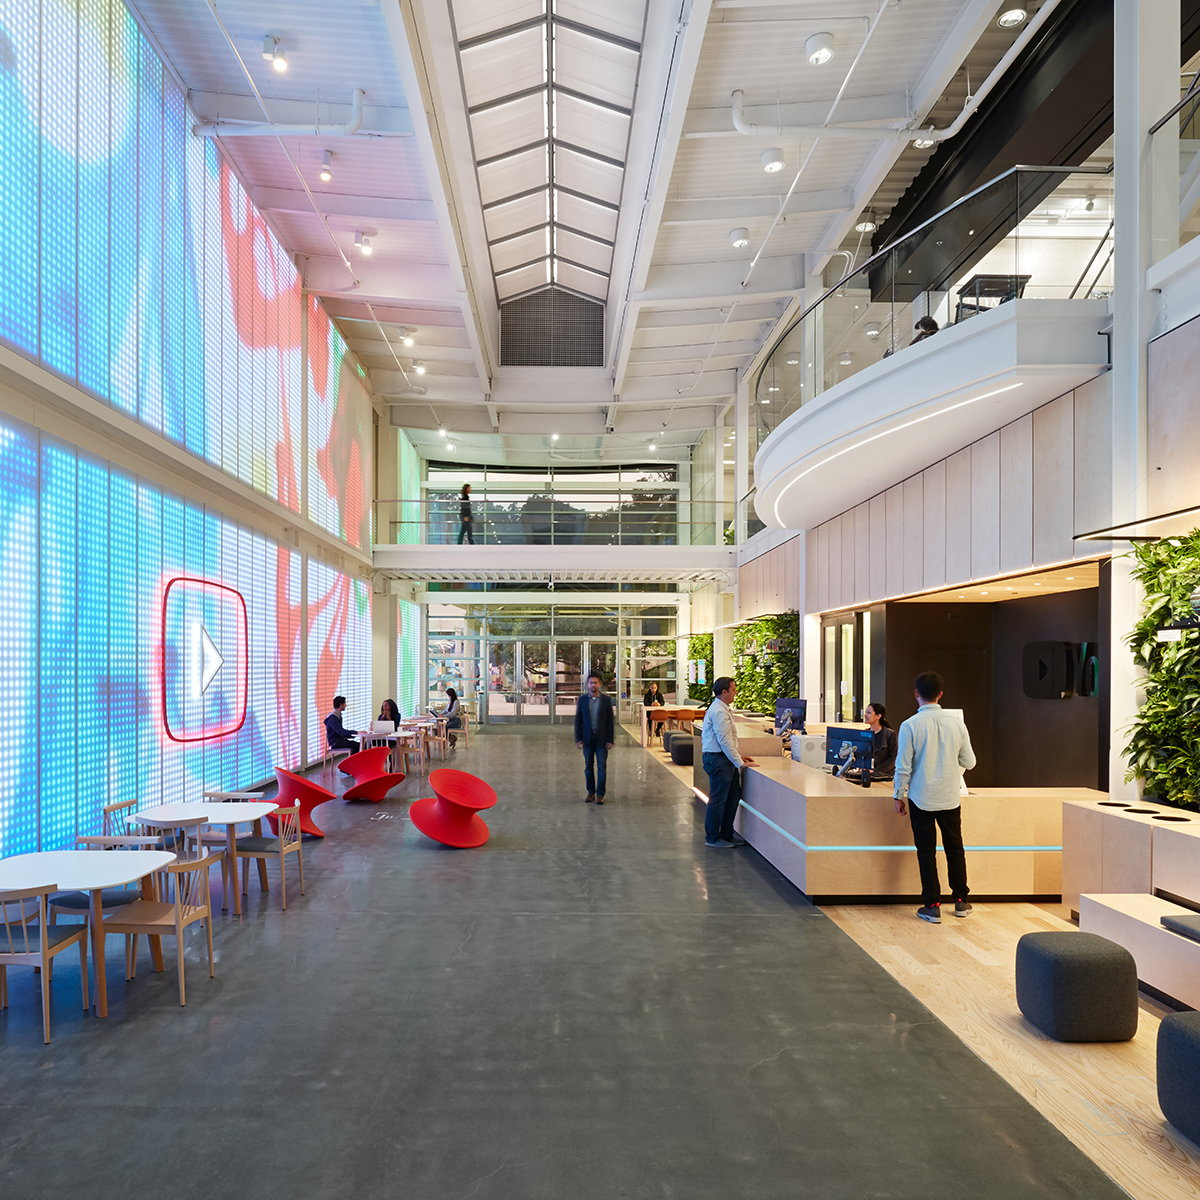 Valerio Dewalt Train and Office Of Things Designs New Lobby for YouTube HQ in San Bruno